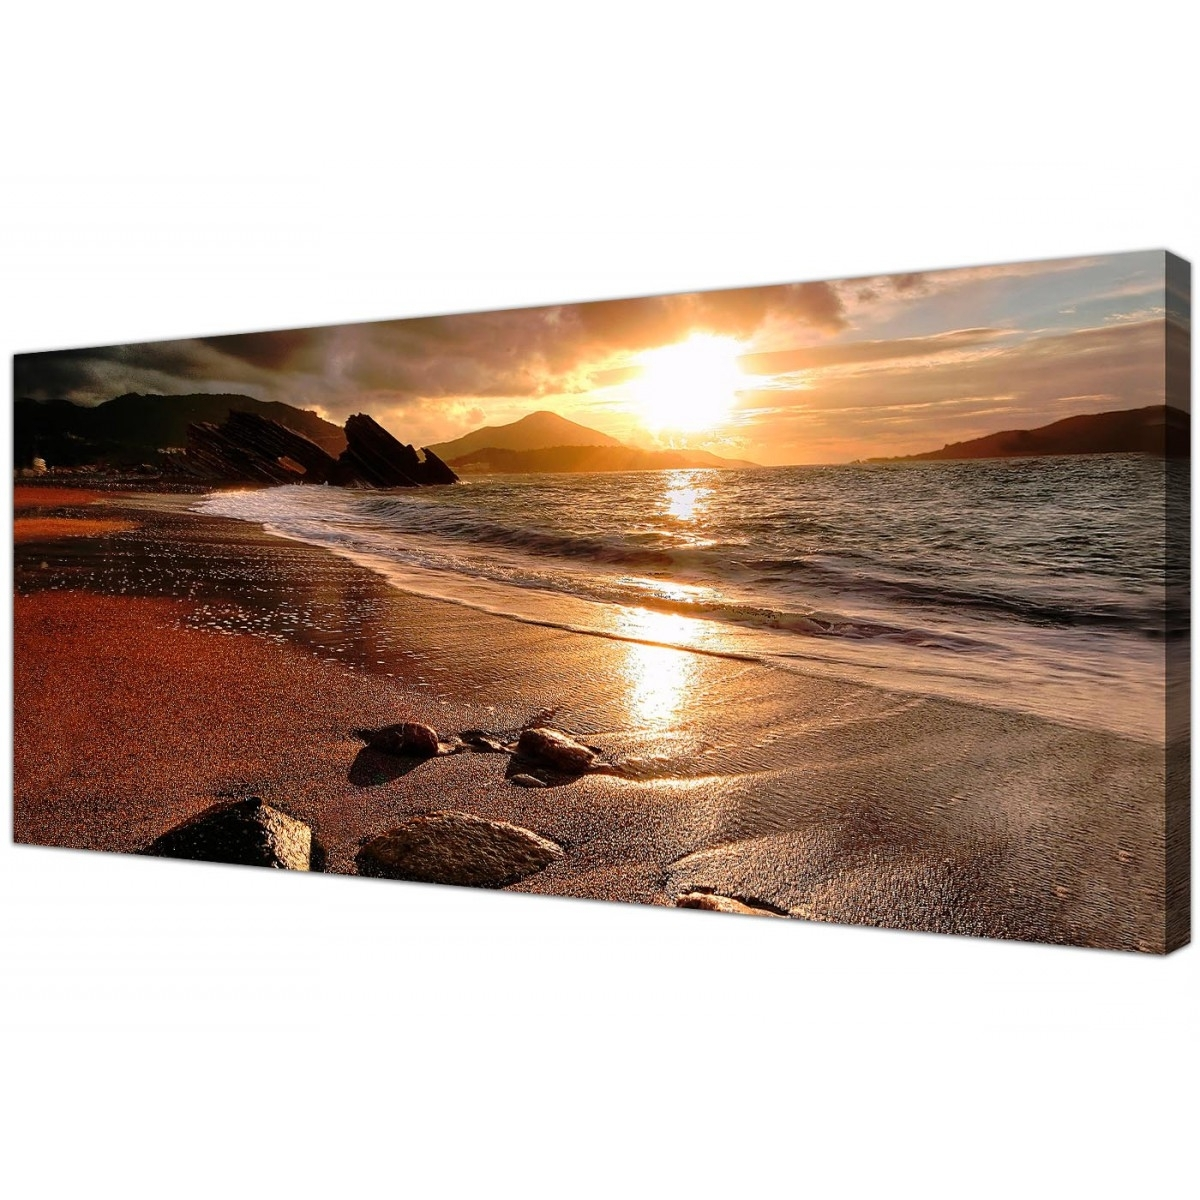 Canvas Wall Art Beach Scenes Within Most Up To Date Wide Canvas Prints Of A Beach Sunset For Your Living Room (View 13 of 15)